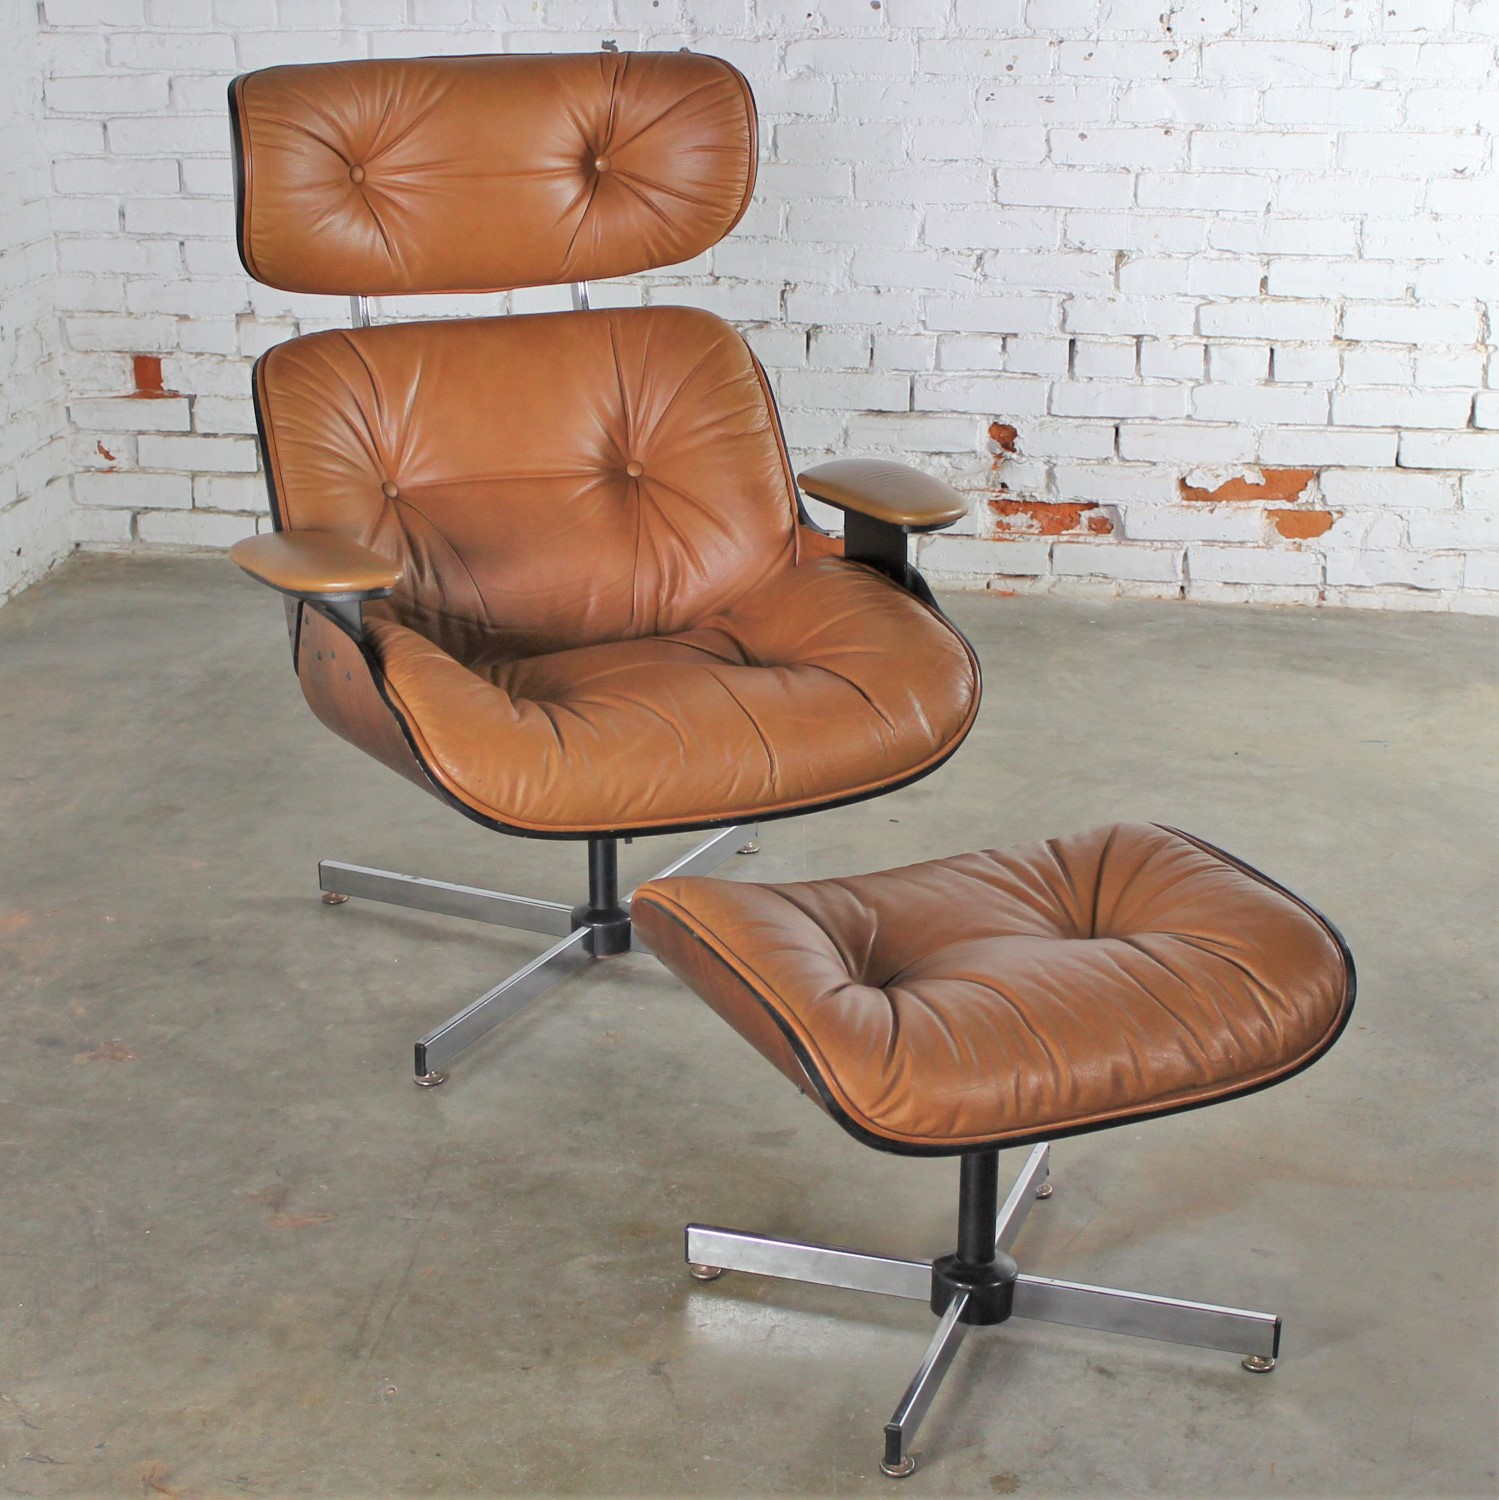 Peachy Mid Century Modern Plycraft Eames Style Lounge Chair Ibusinesslaw Wood Chair Design Ideas Ibusinesslaworg